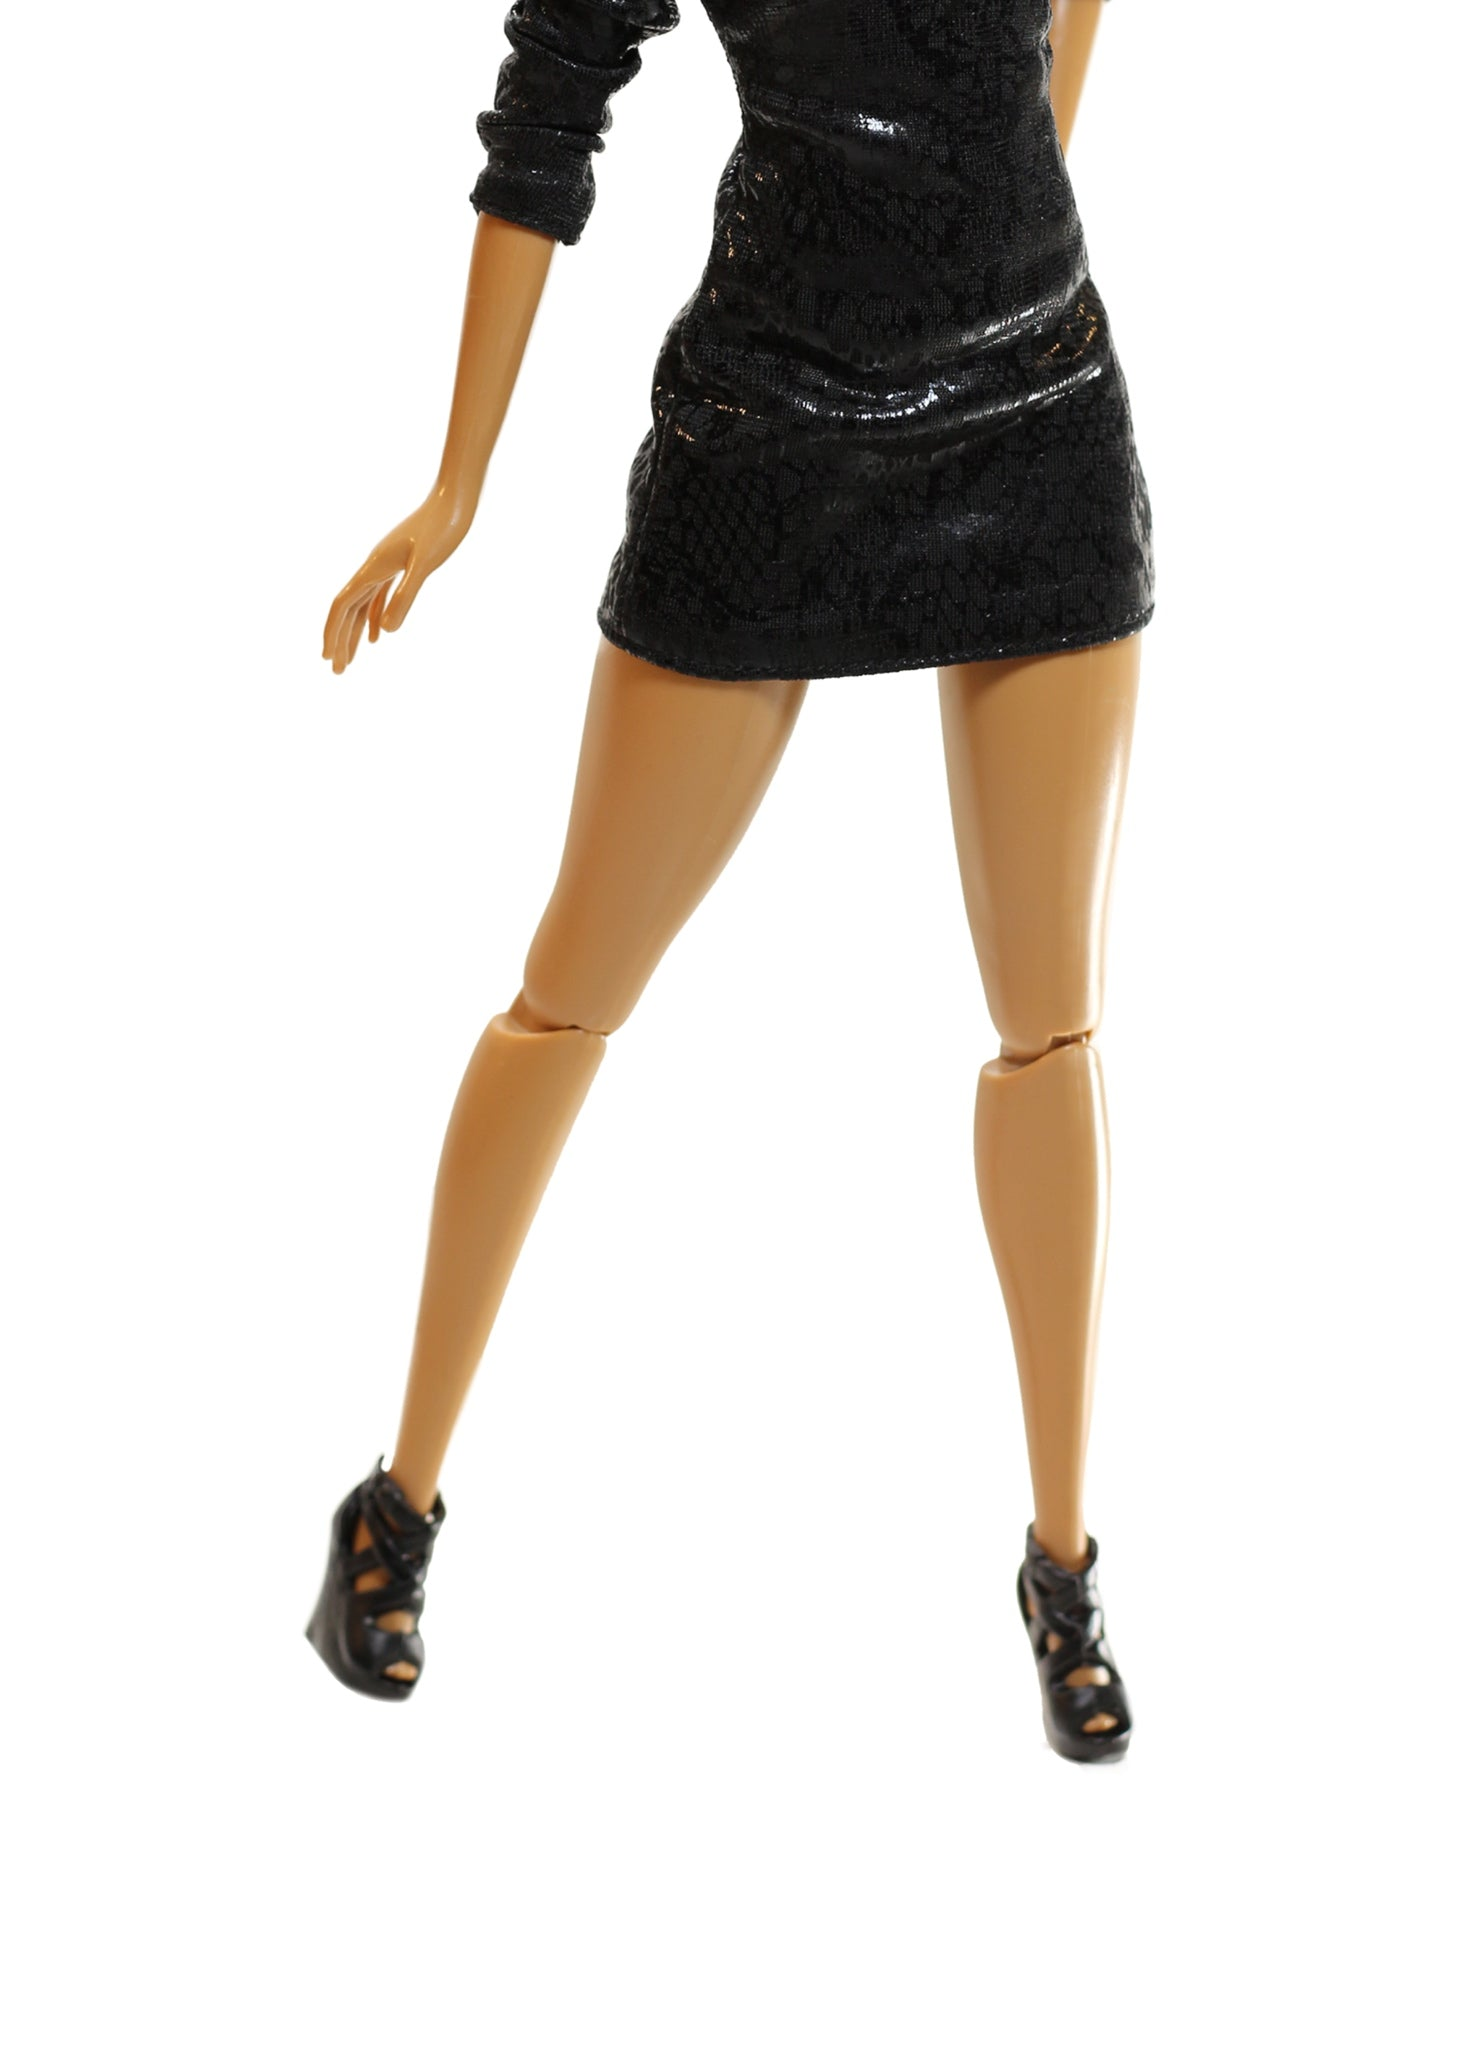 A fashion doll with black dress and black high heel.